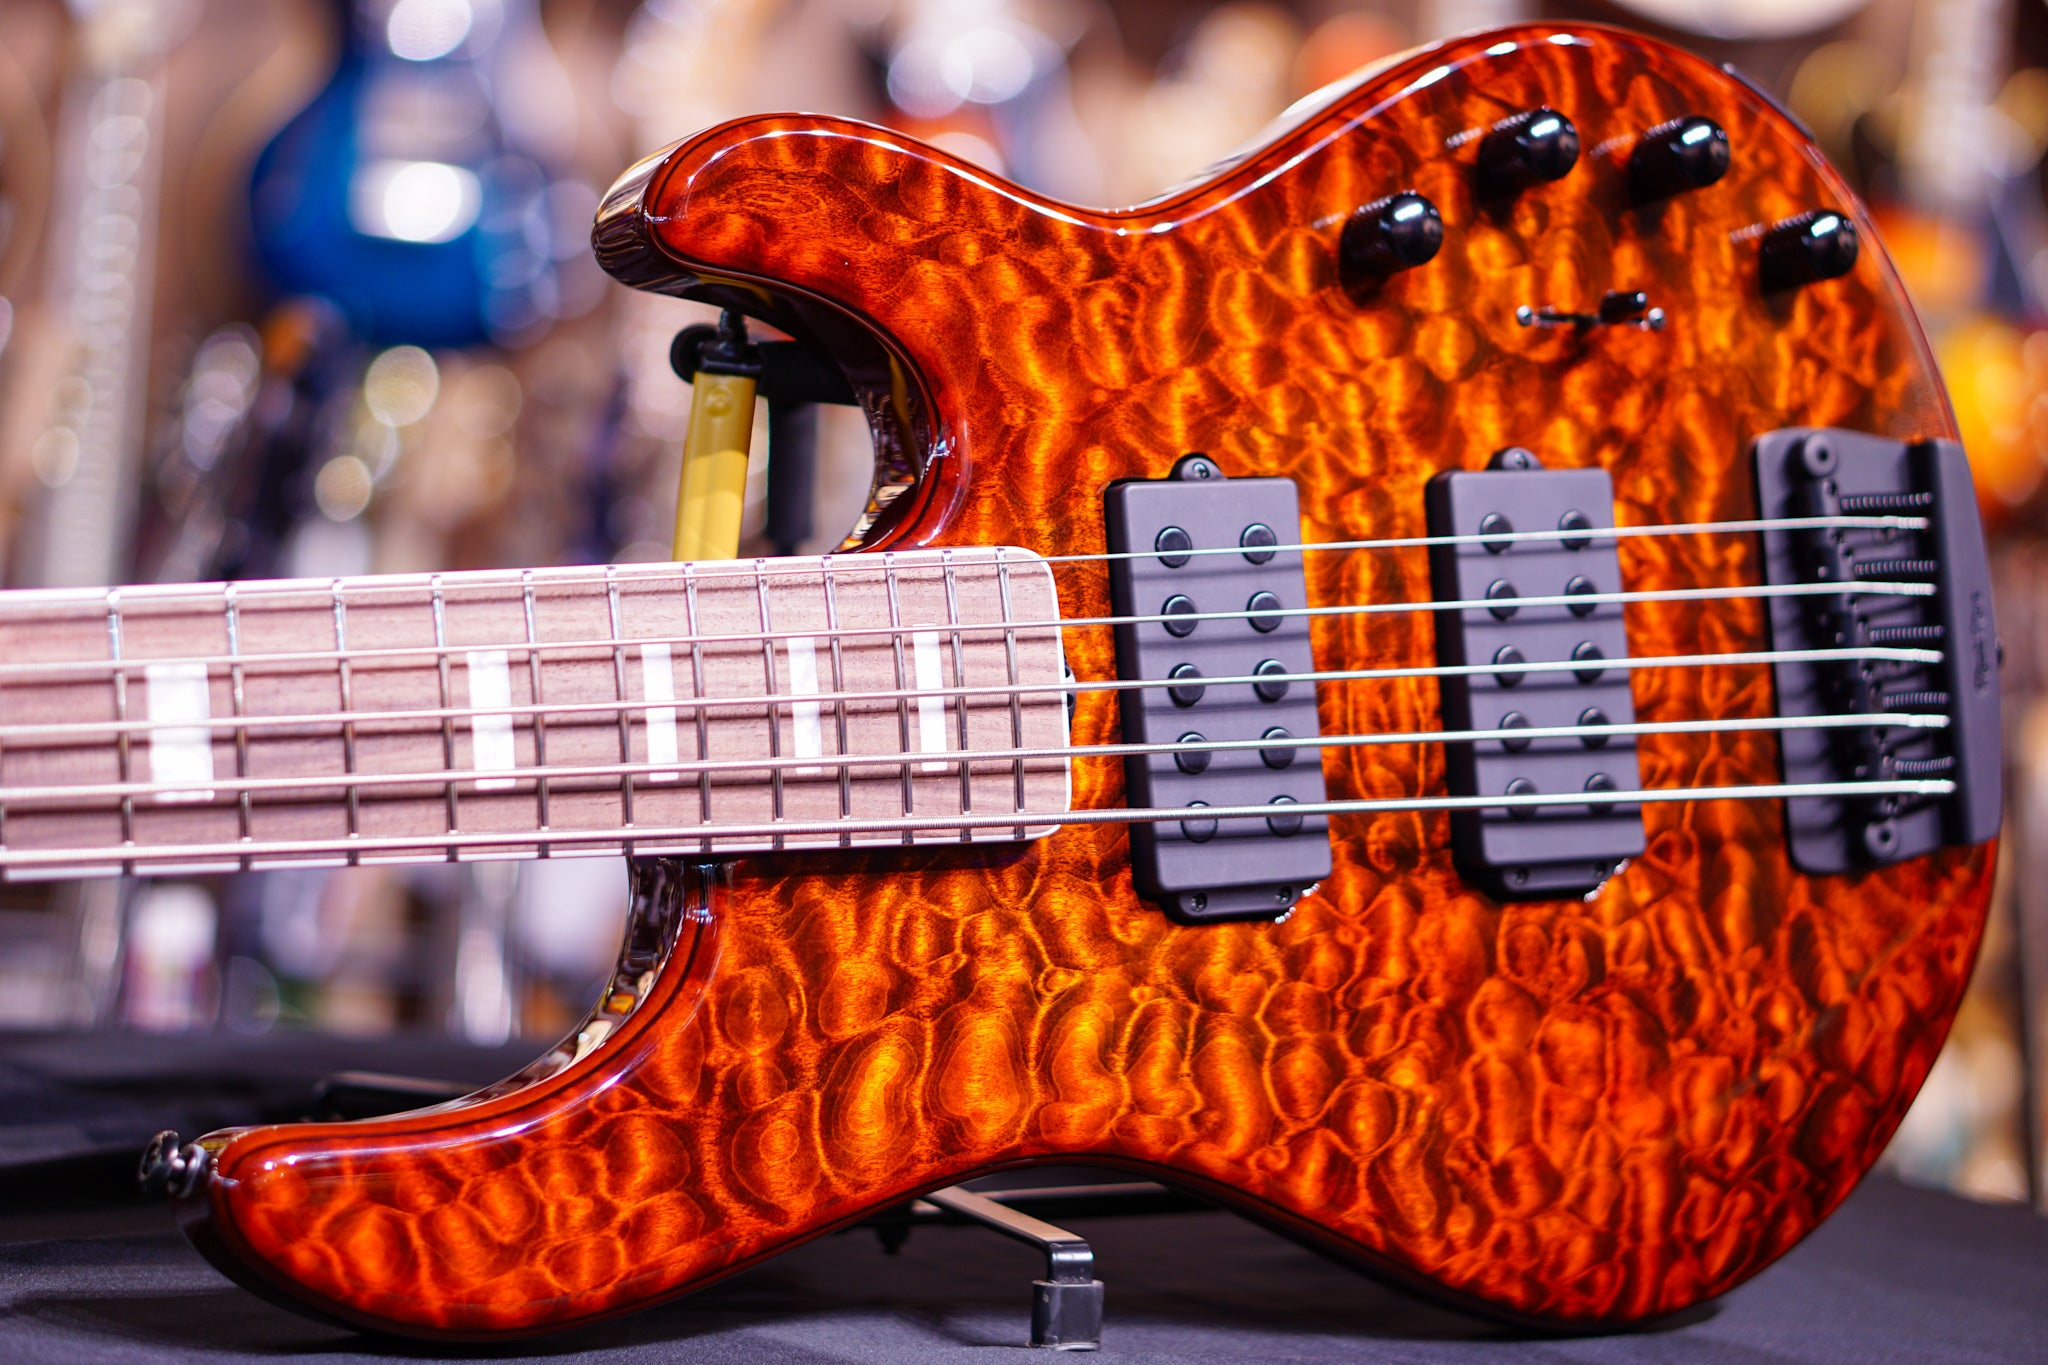 Ernie Ball Music Man BFR StingRay 5 - Giants Orange Quilt F85378 Musicman - HIENDGUITAR.COM